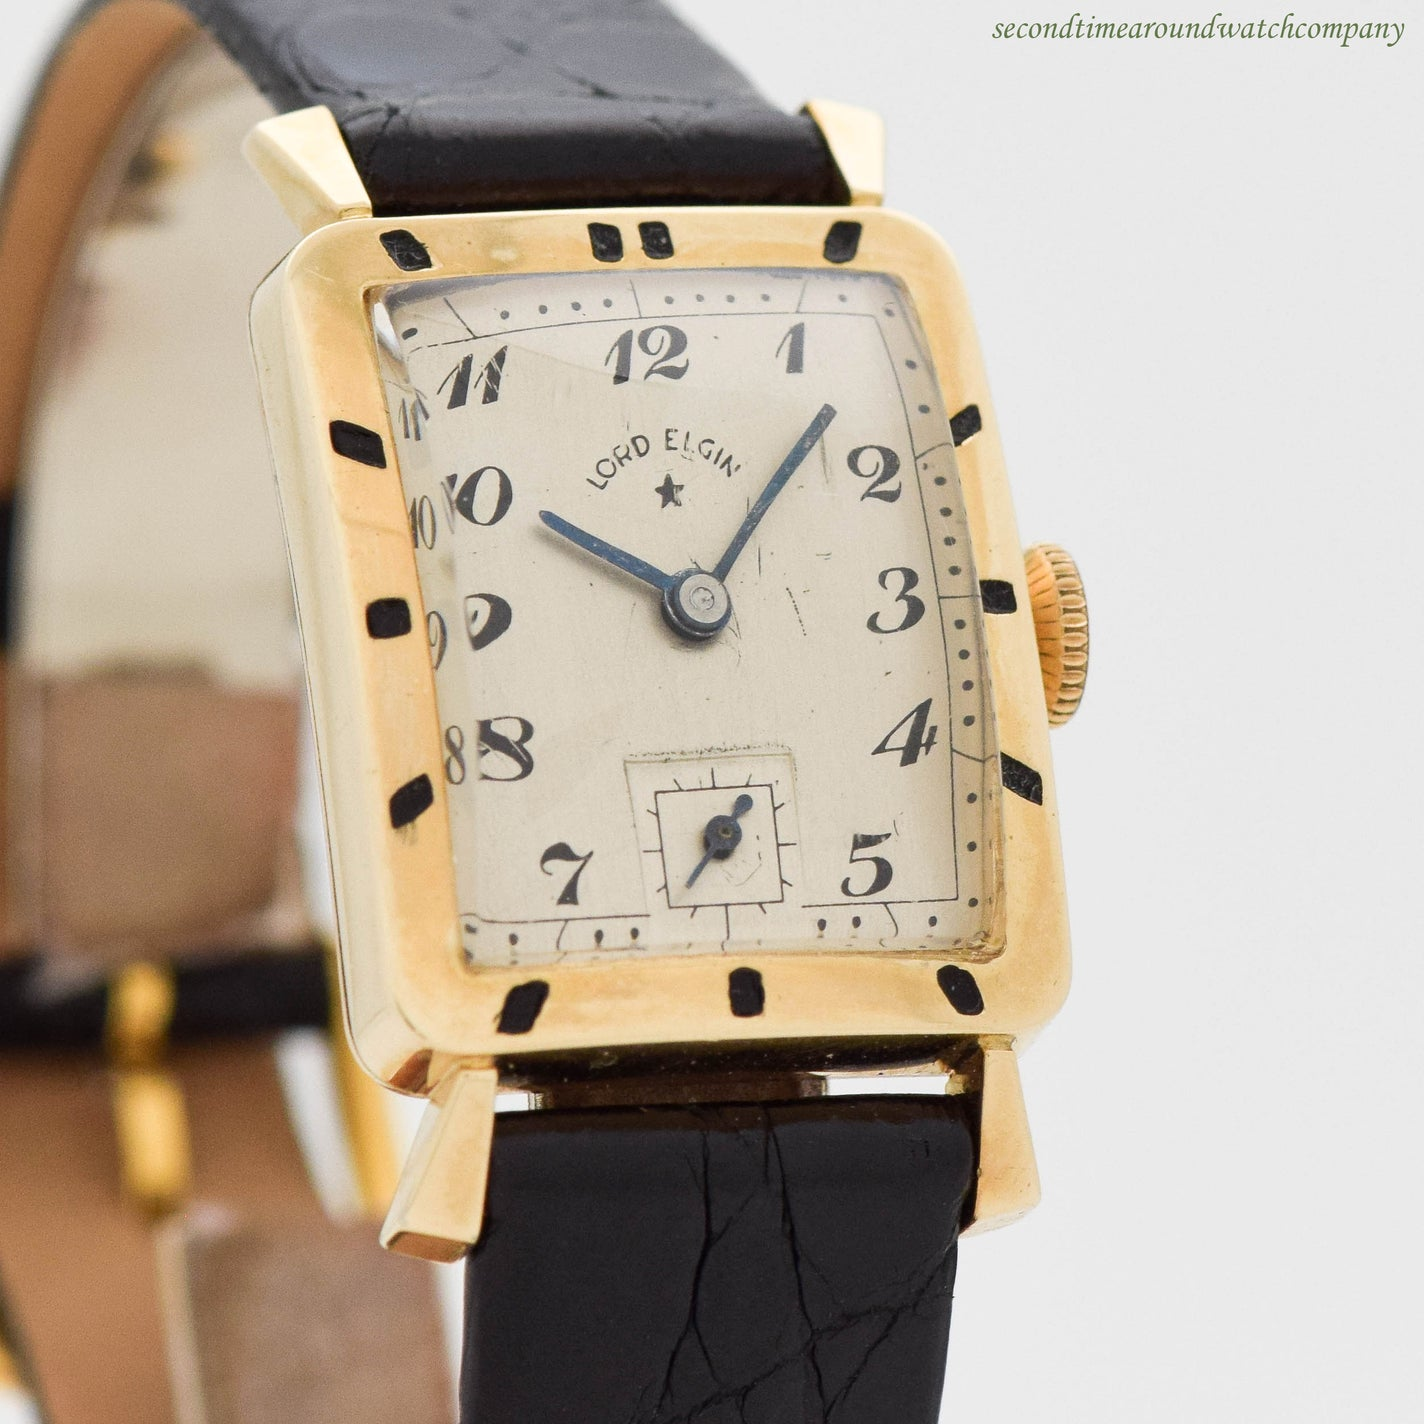 1954 Vintage Lord Elgin Art Deco Style 10k Yellow Gold Filled Watch Second Time Around Watch Company